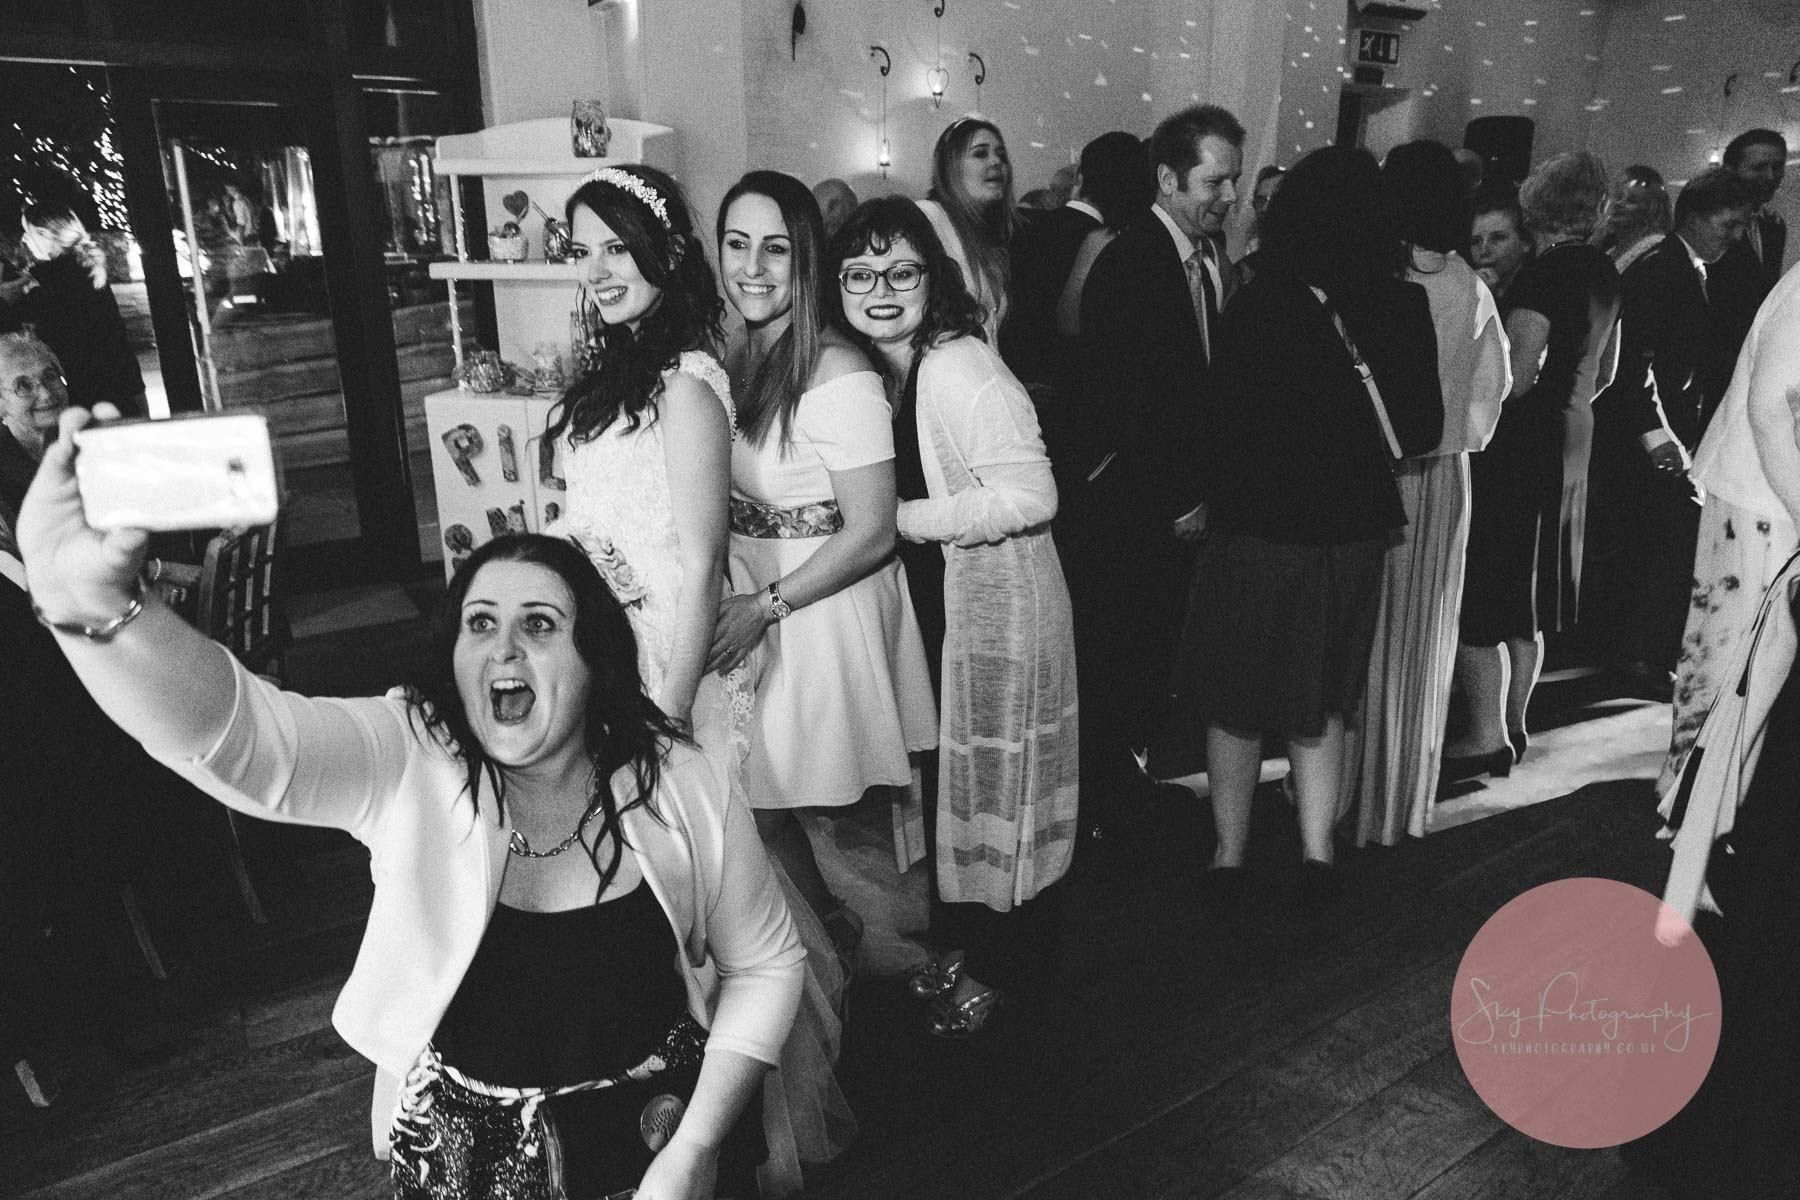 A panic selfie at a wedding